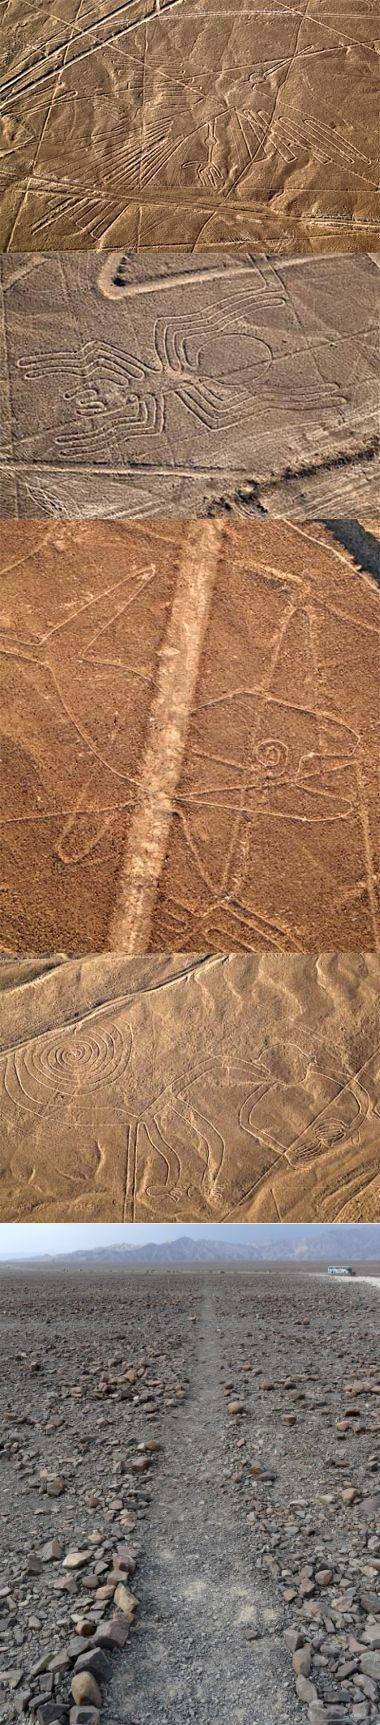 The Nazca lines are a series of ancient geoglyphs located in the Nazca Desert in southern Peru.  Their purpose remains unknown. The hundreds of individual figures range in complexity from simple lines to stylized hummingbirds, spiders, monkeys, fish, sharks, orcas, & lizards. The lines are shallow designs made in the ground by removing the reddish pebbles & uncovering the whitish/grayish ground beneath. Designated as a UNESCO World Heritage Site in 1994. #mytumblr